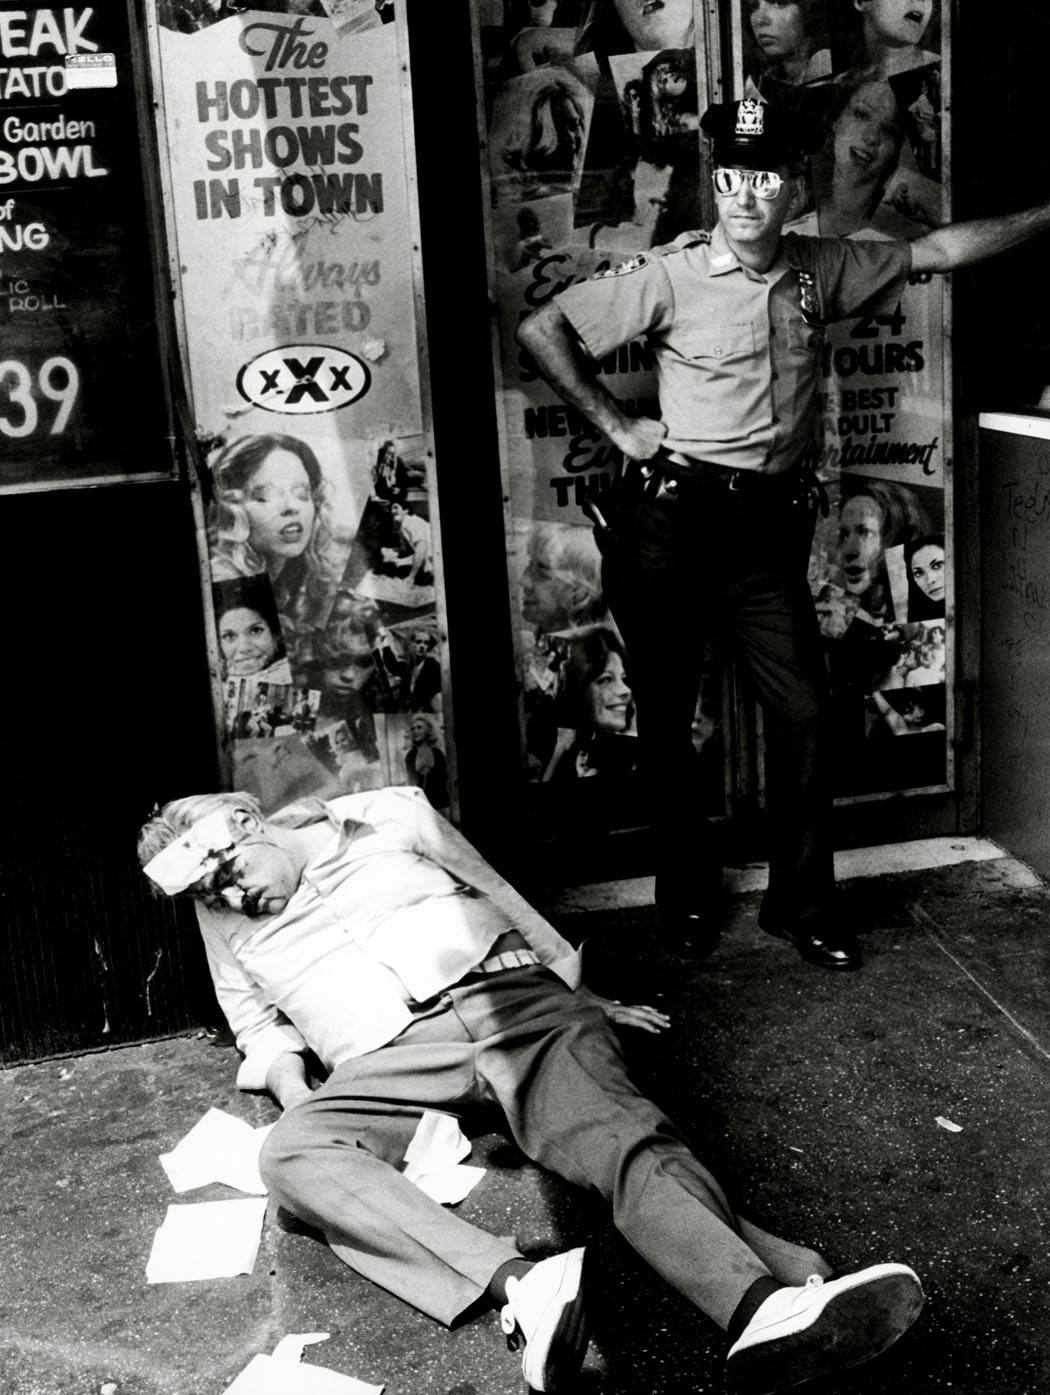 Miron Zownir, New York City, 1982.